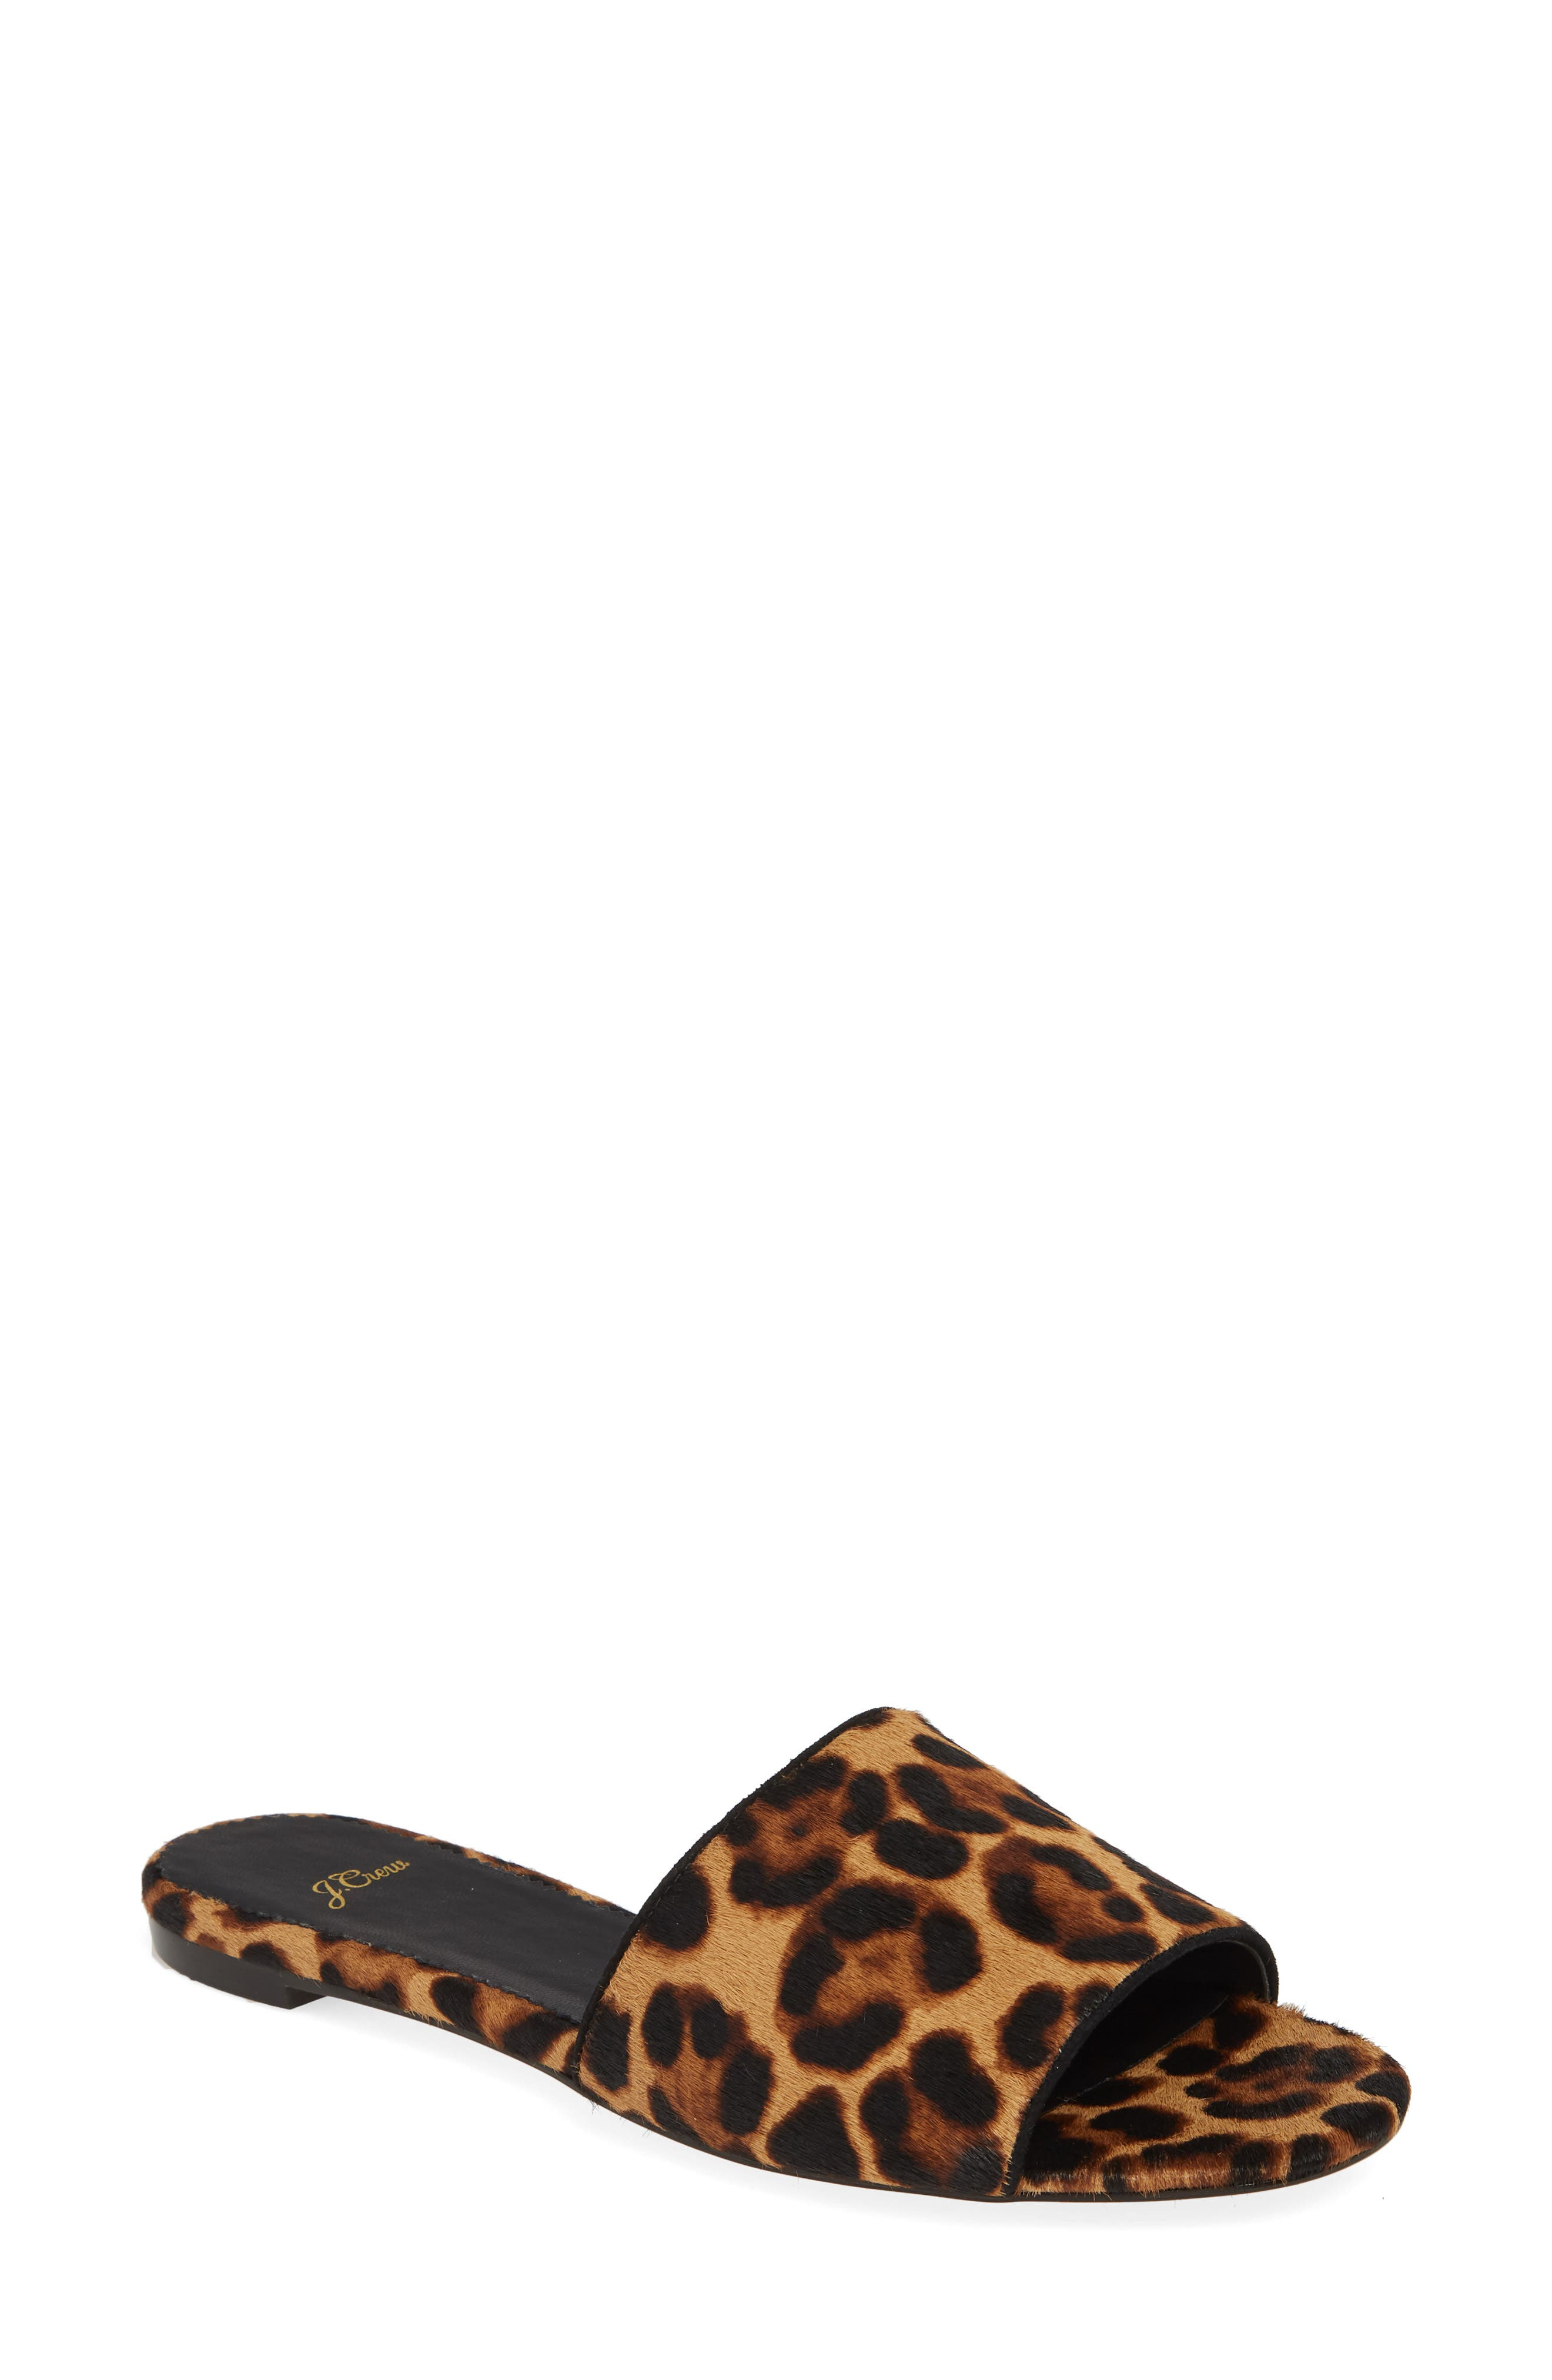 J.CREW Cora Leopard Print Calf Hair Slide Sandal, Main, color, LEOPARD PRINT CALF HAIR